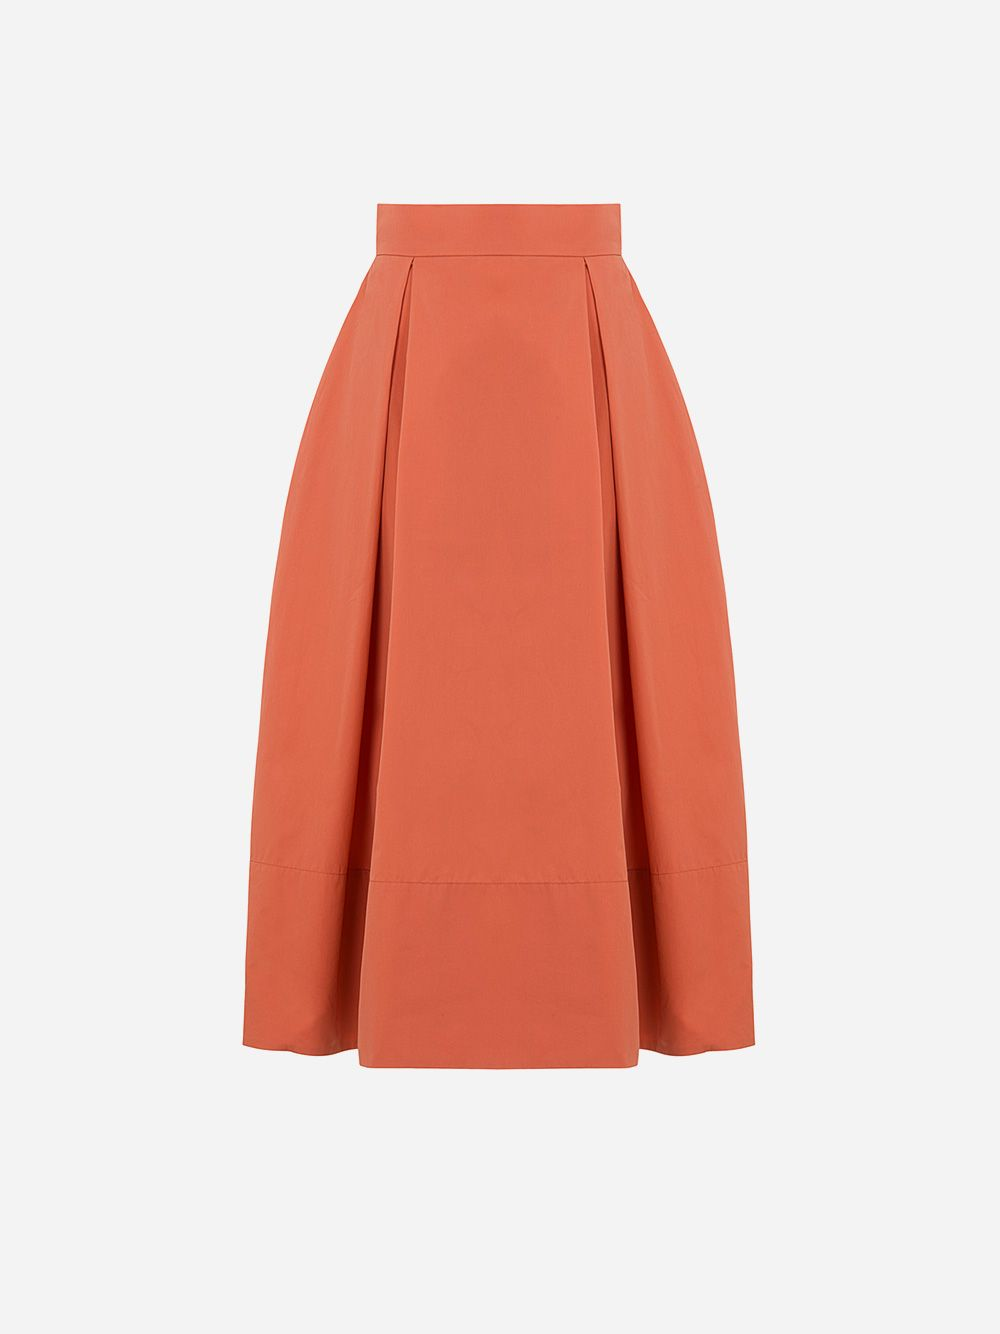 Orange A-line Pleated Skirt | A-line Clothing